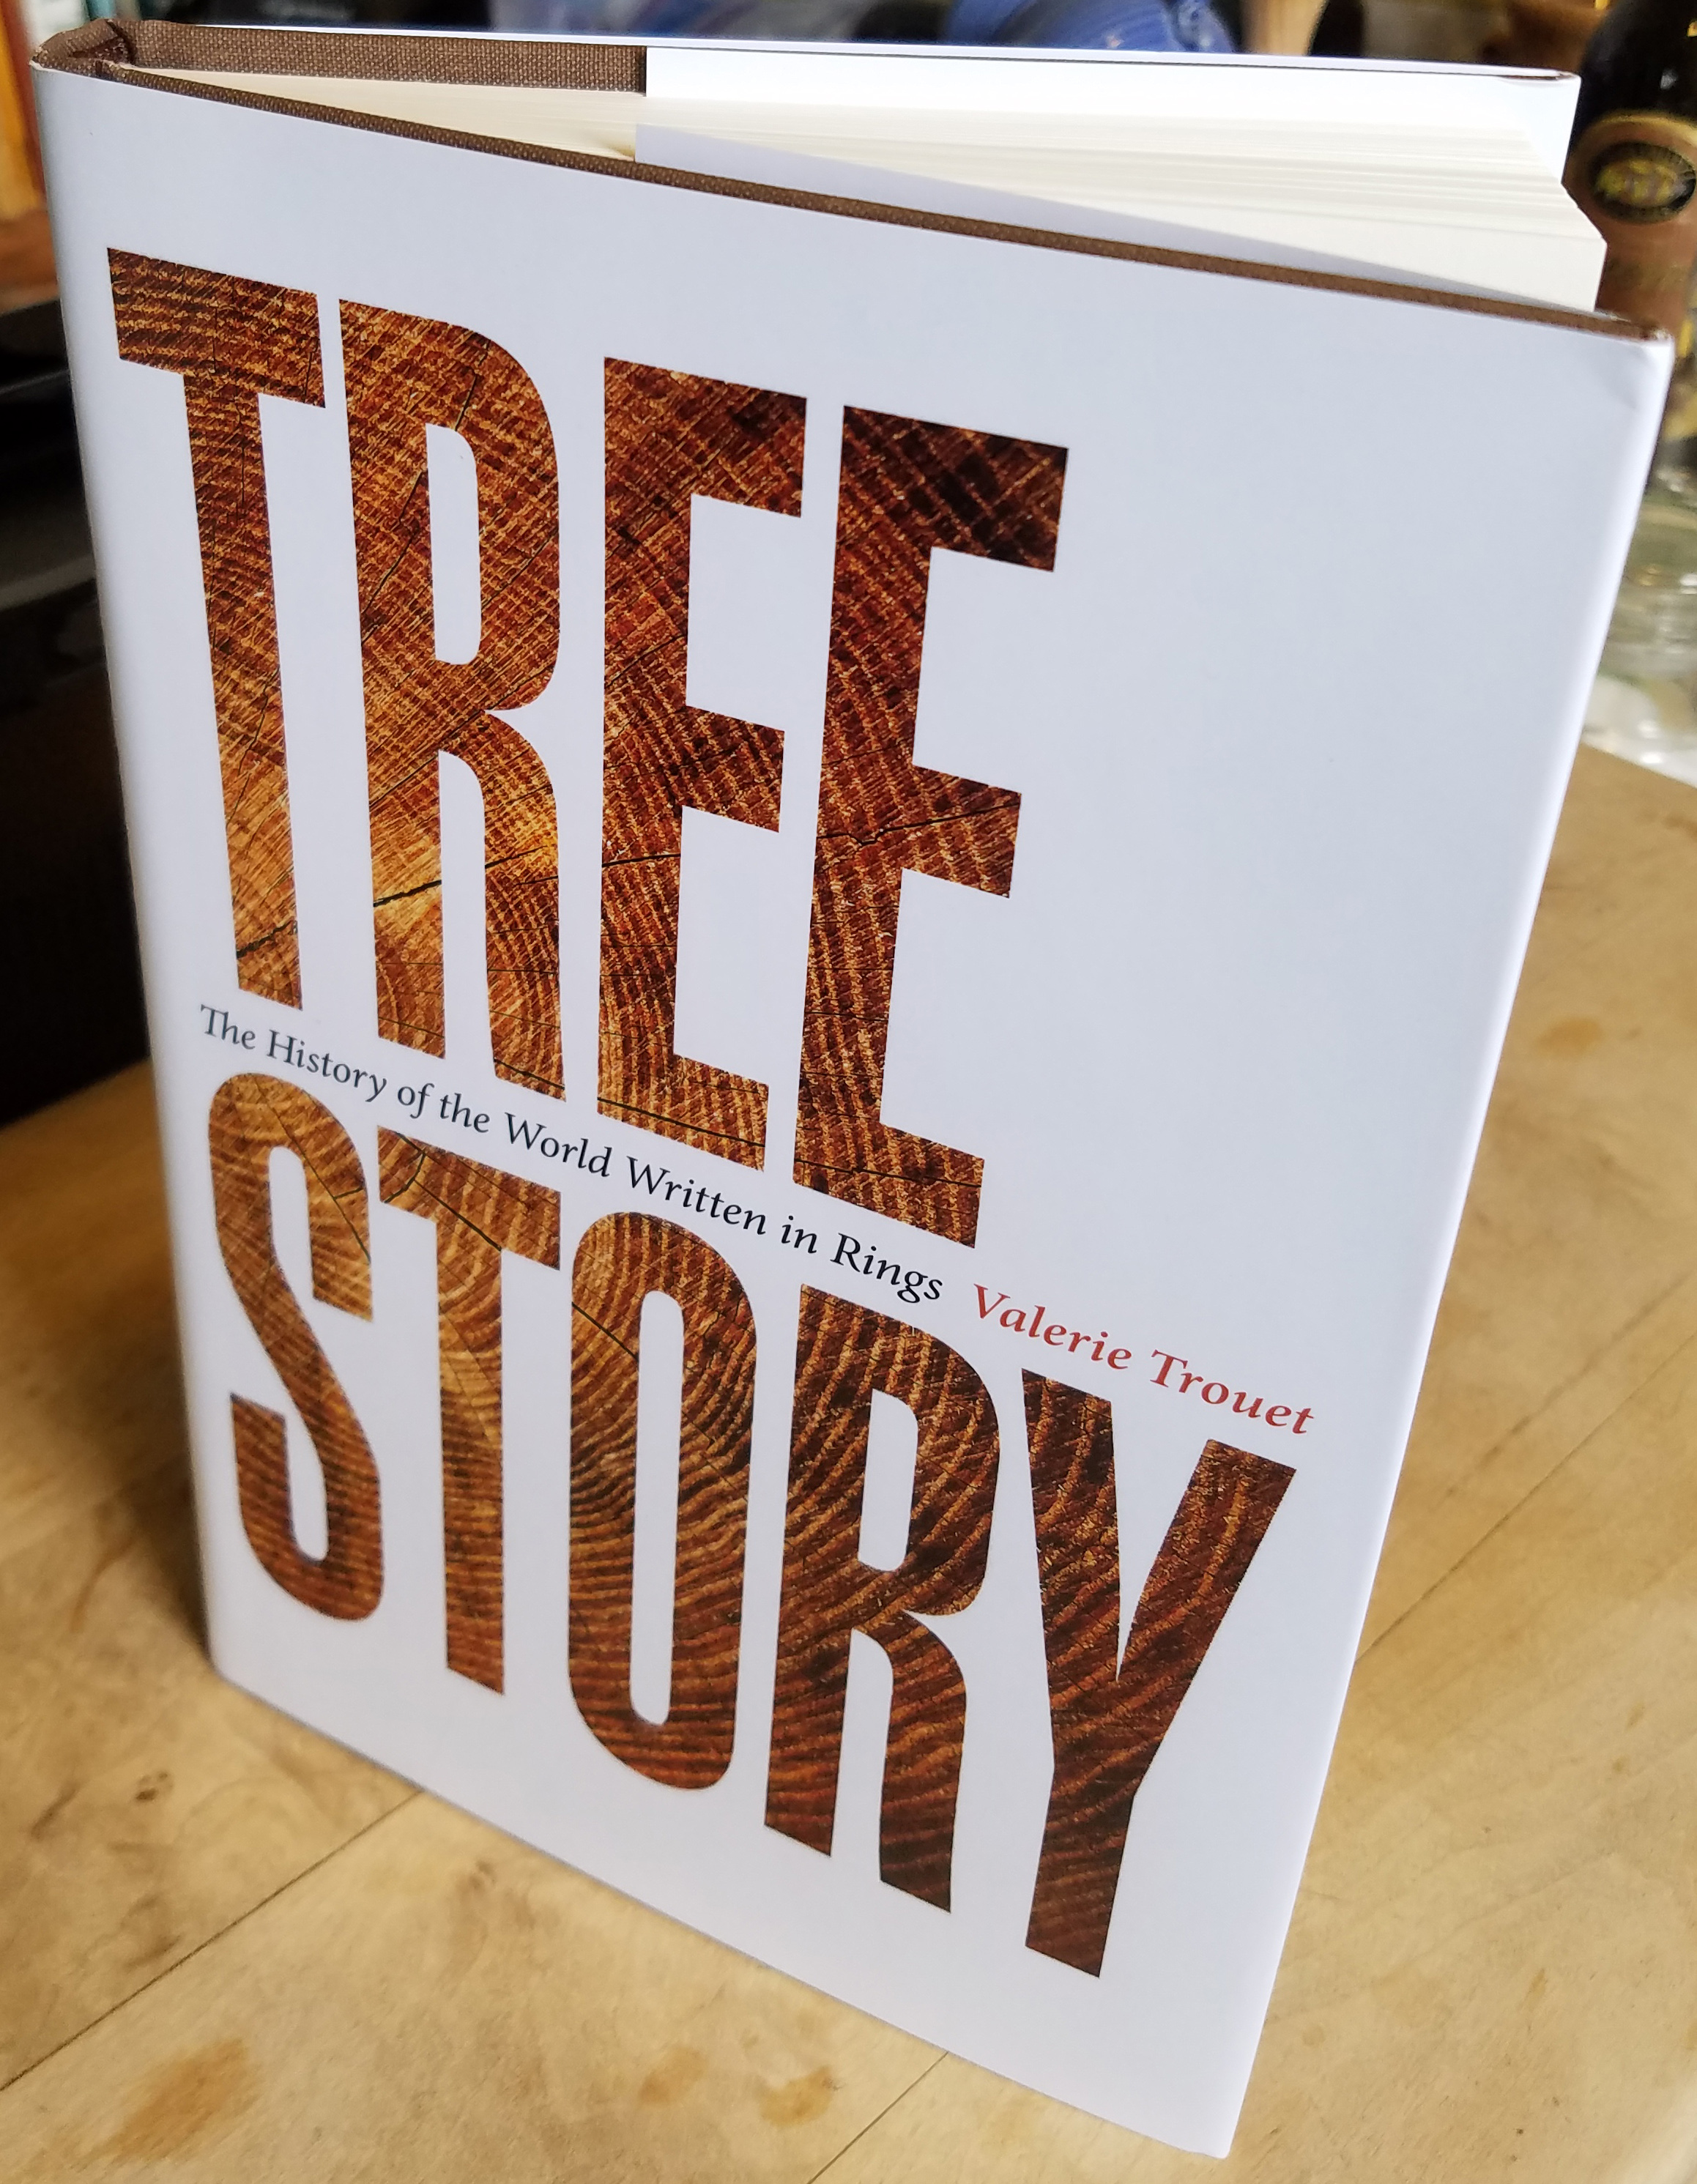 Tree Story by Valerie Trouet (hardback book)